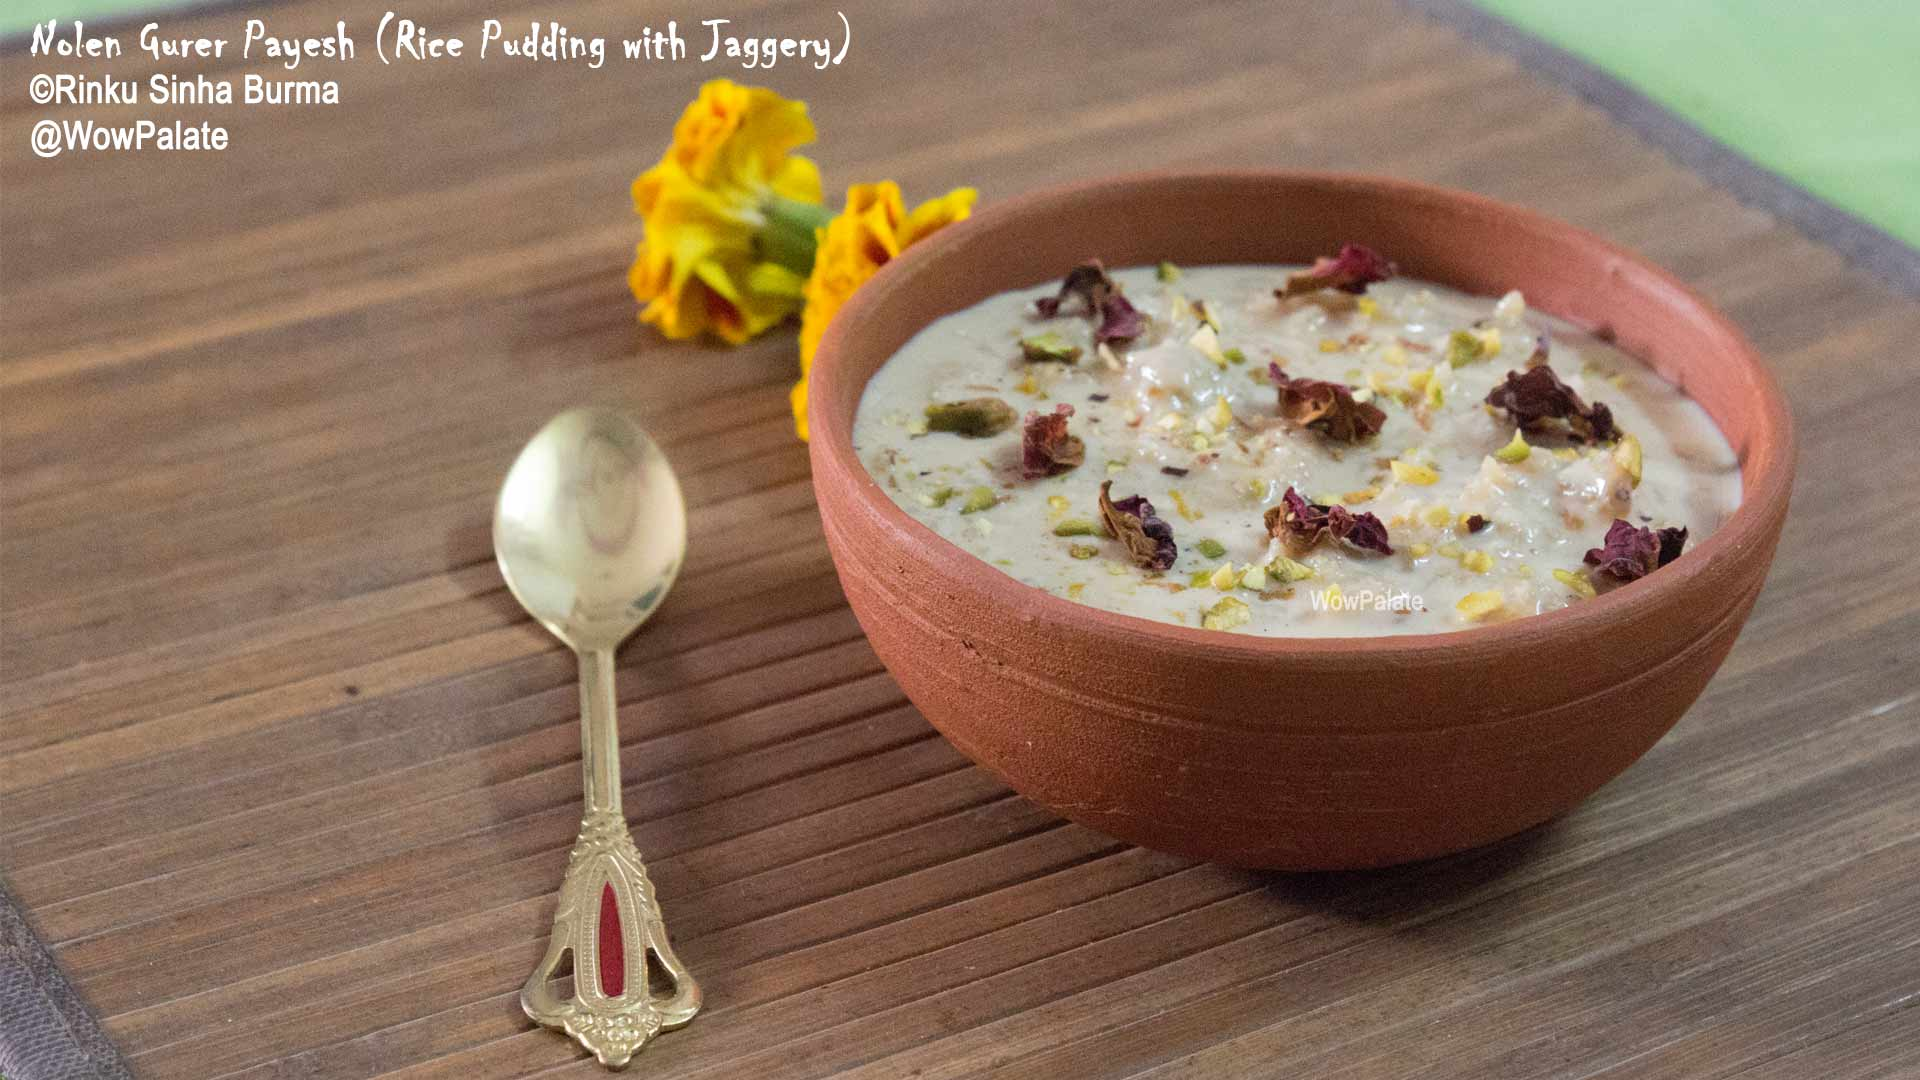 Nolen Gurer Payesh (Rice Pudding with Jaggery)